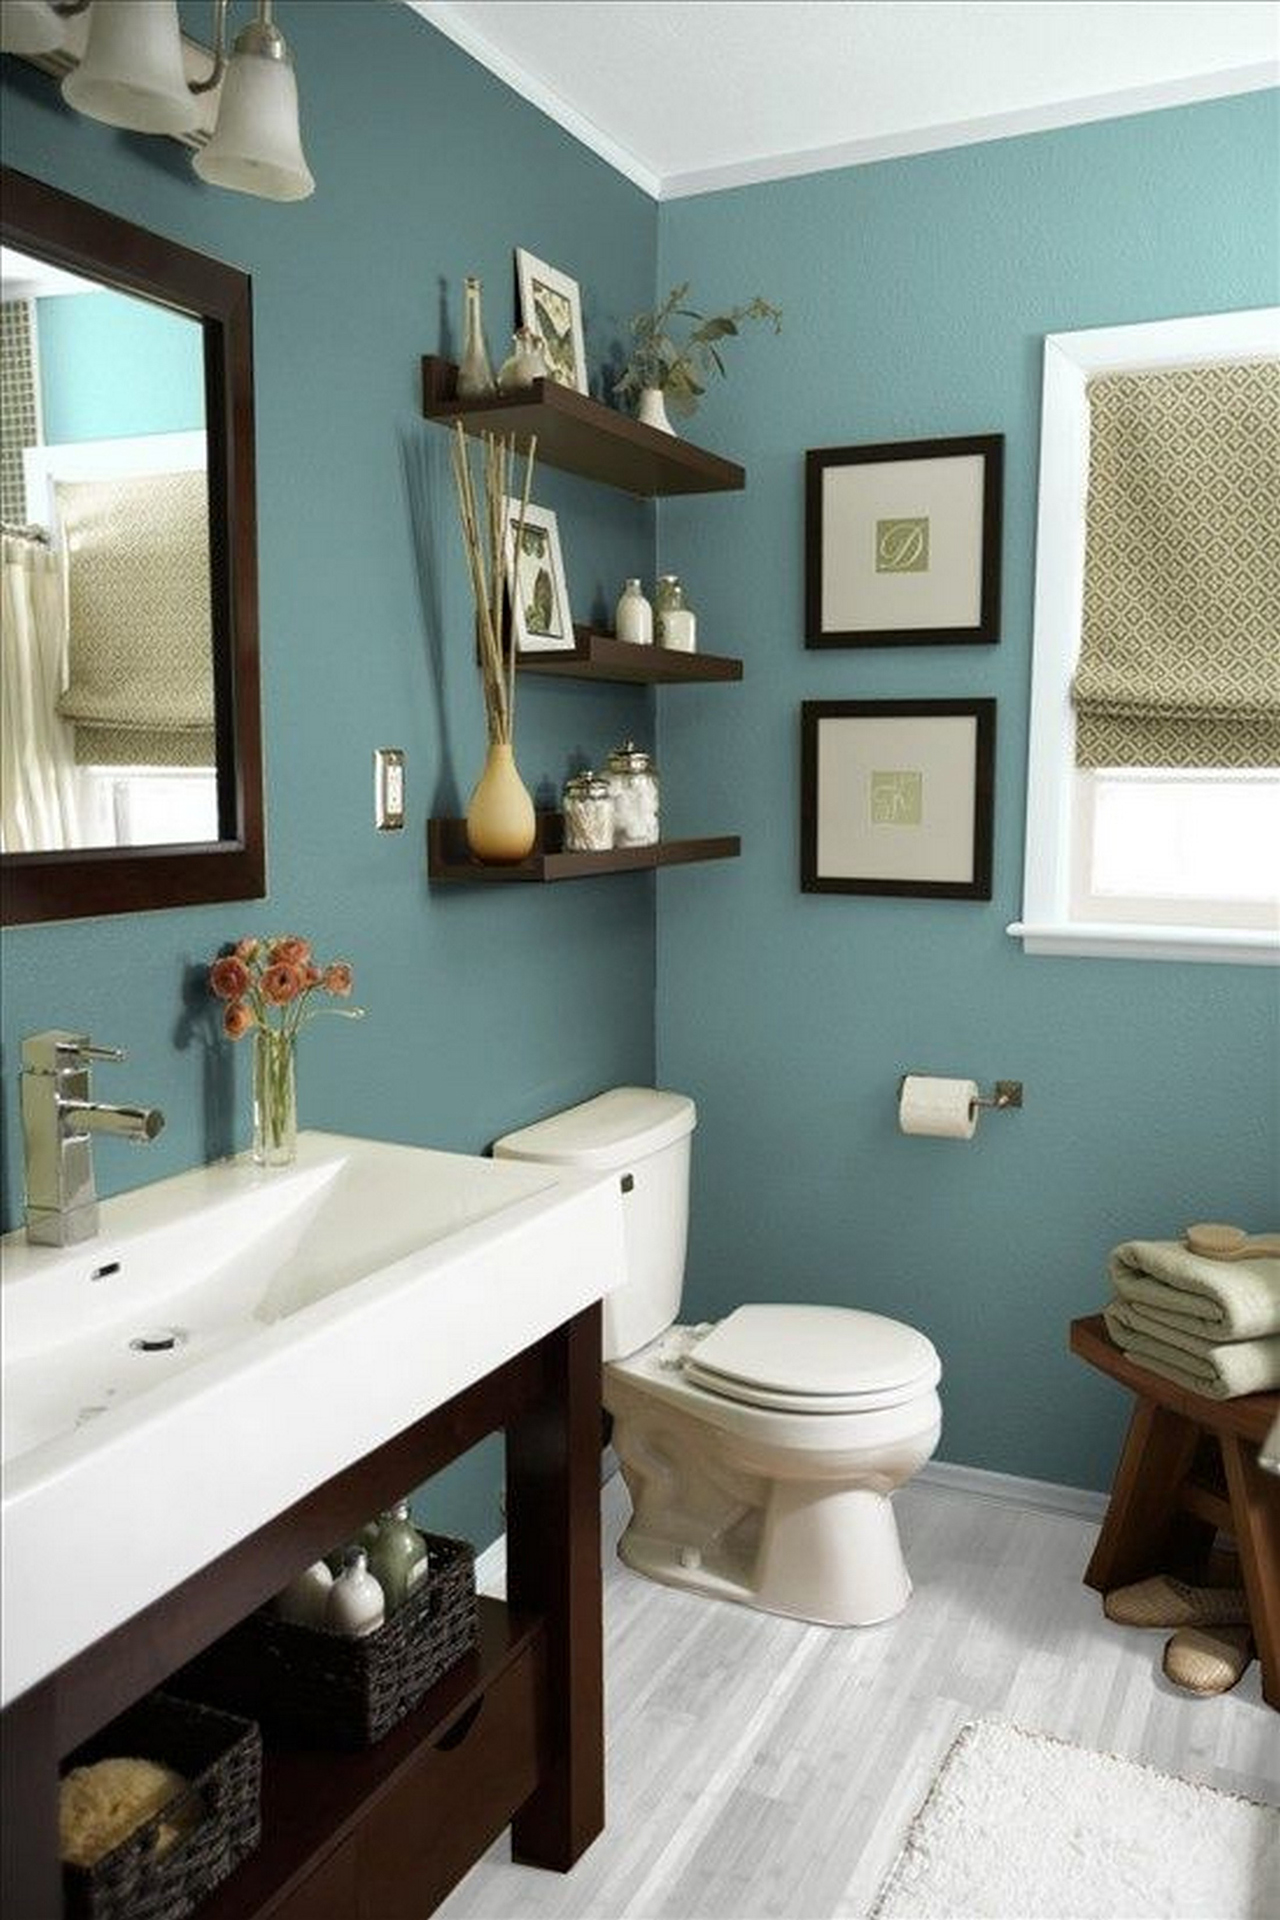 Bath decors 13. Chic and soothing blue design theme MMEXBZR